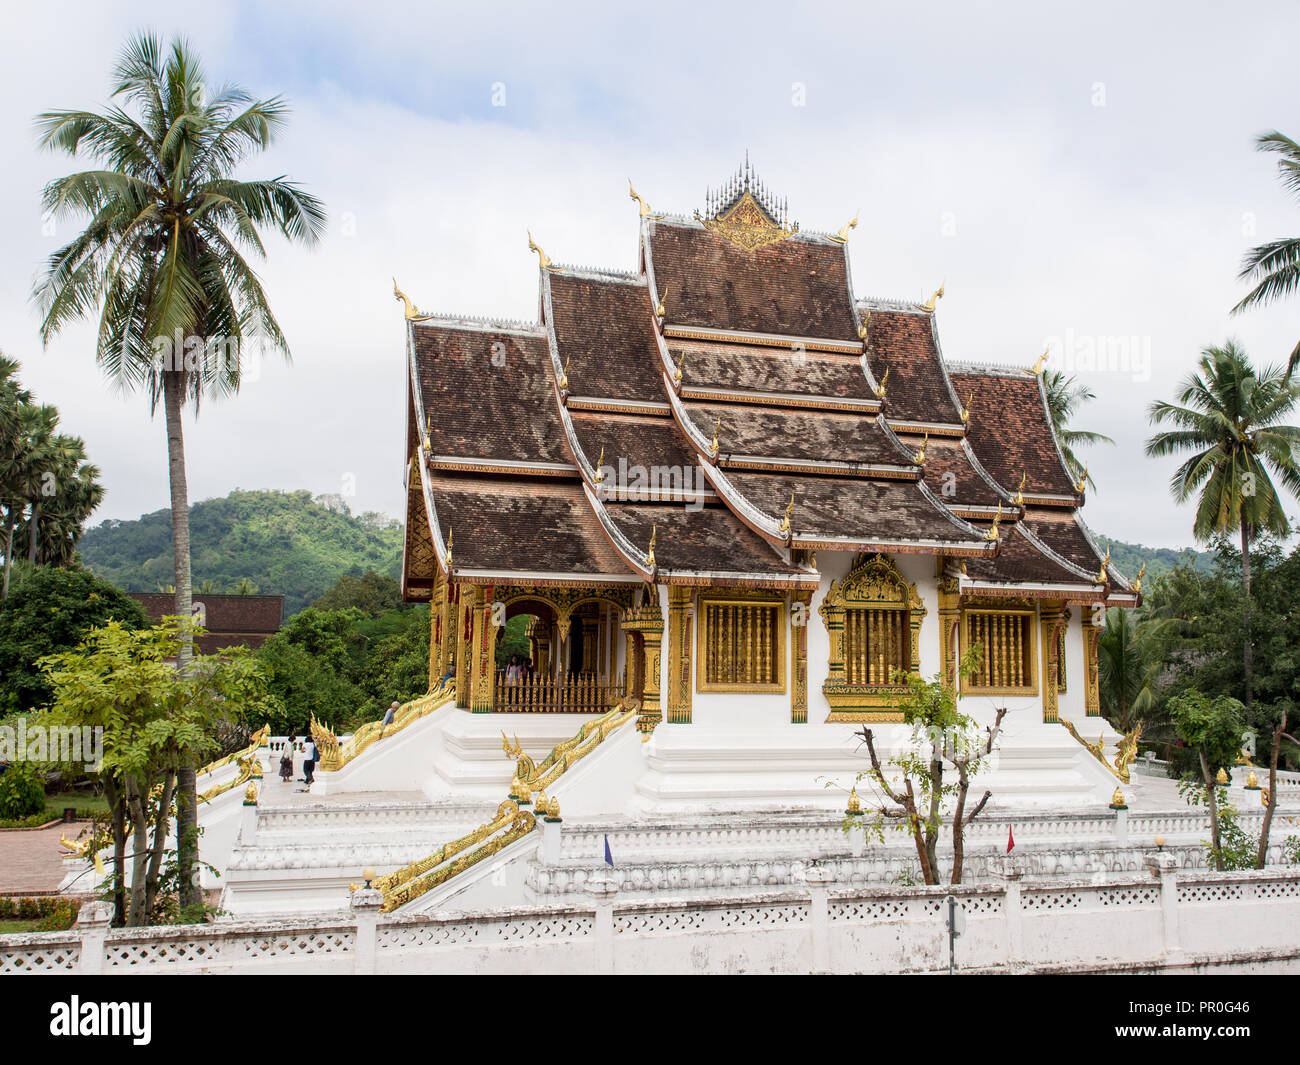 Haw Pha Bang temple, part of the National Museum complex, Luang Prabang, Laos, Indochina, Southeast Asia, Asia - Stock Image